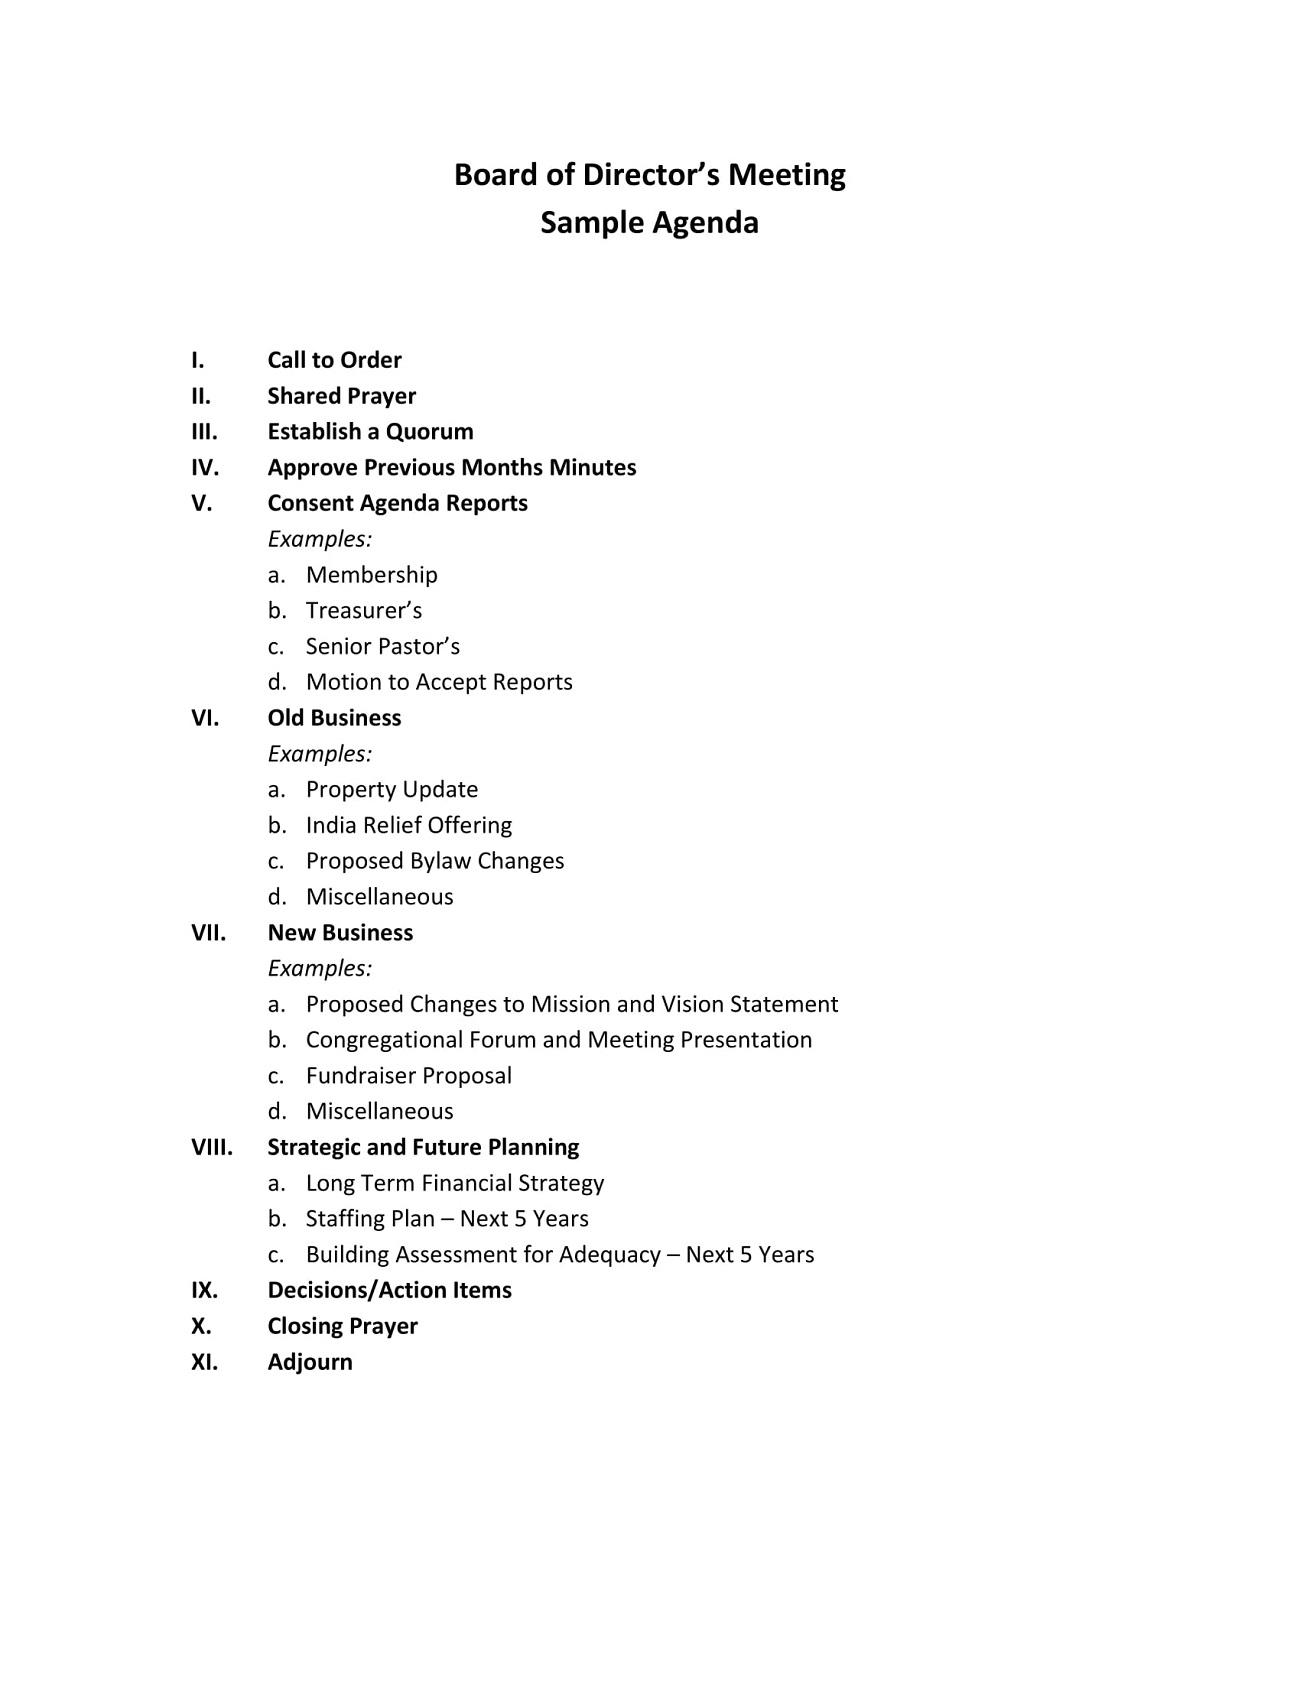 Board Director Church Meeting Agenda Staff Format How To Write A End Of Year Leadership Pdf Preside Over  Sample Template Full